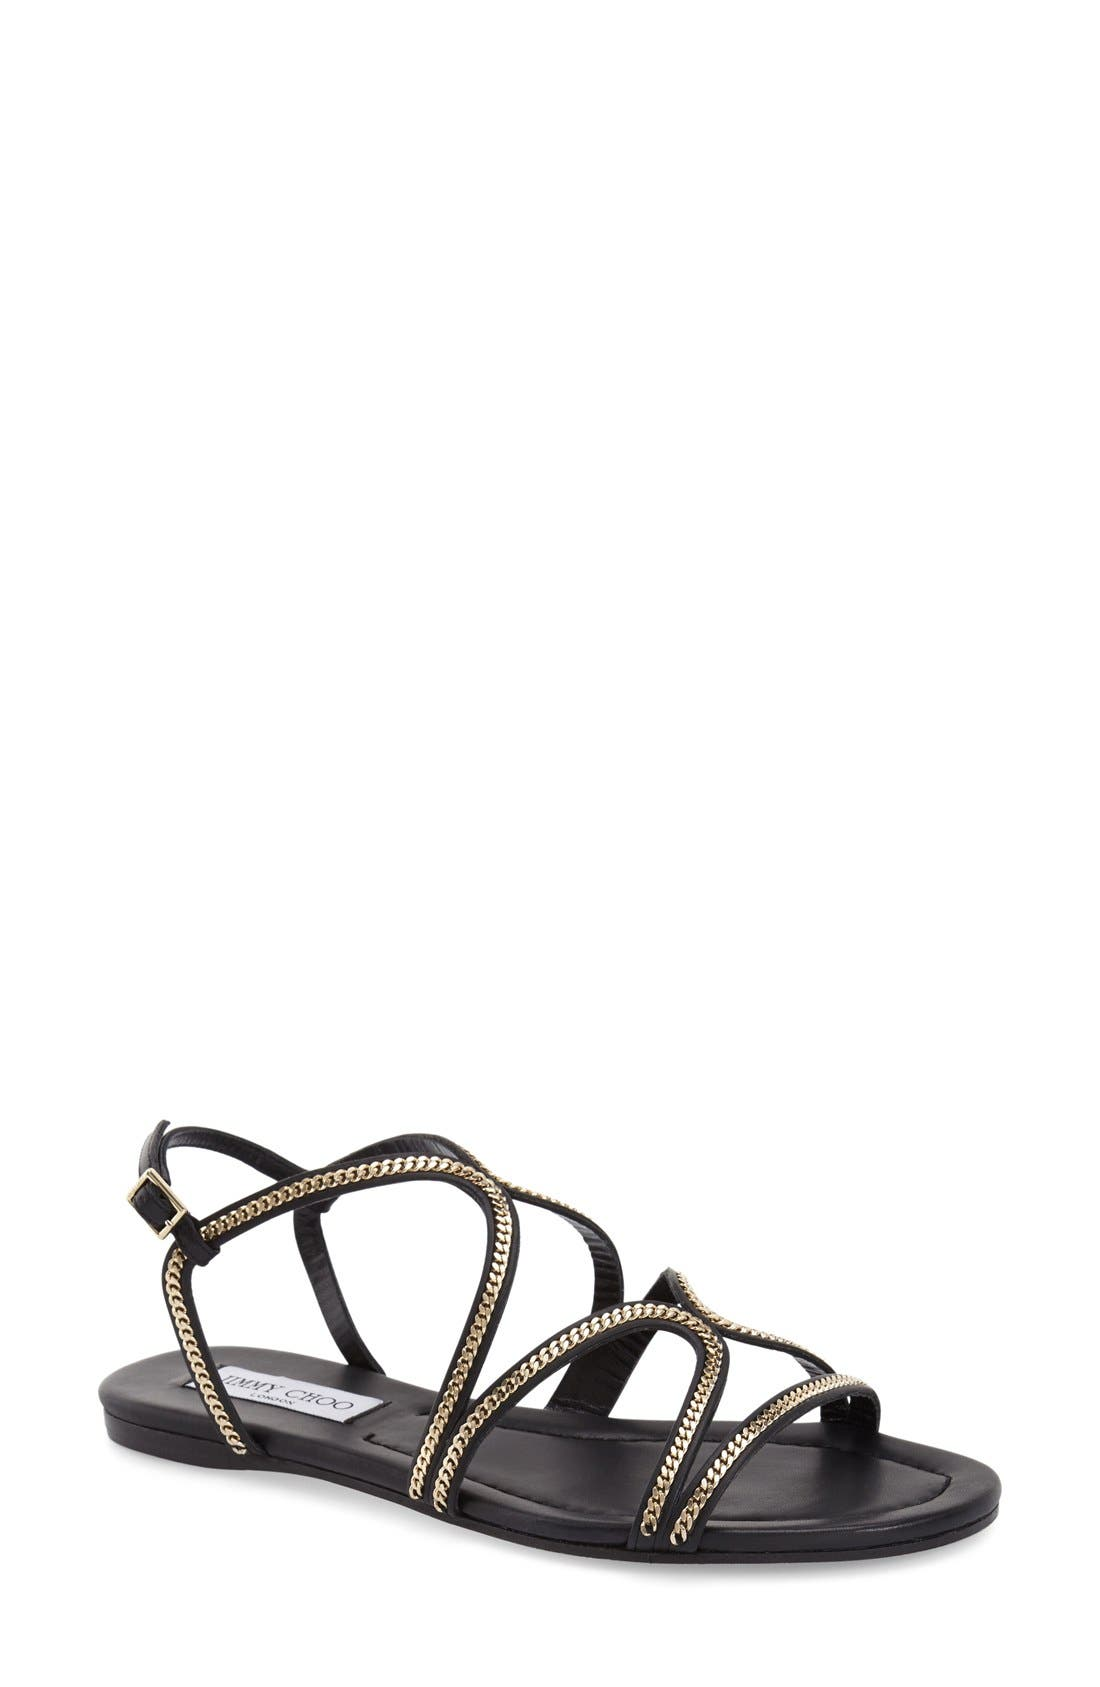 JIMMY CHOO Nickel Sandal